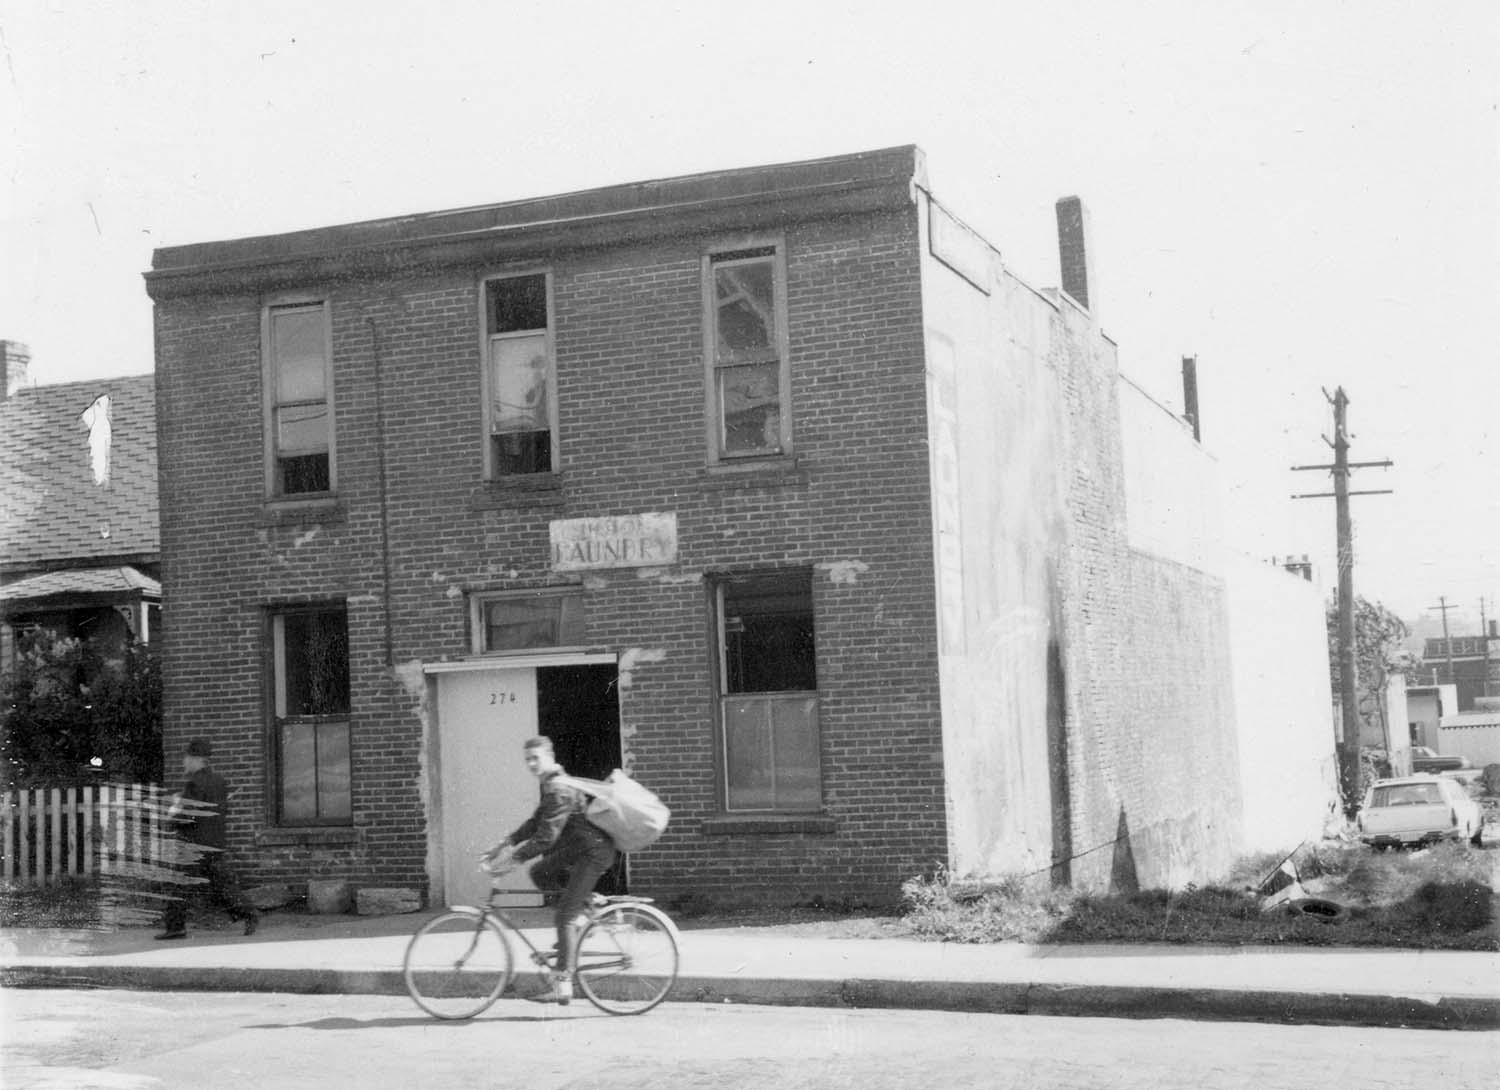 274 - 278 Union Street, 1973. Photograph shows the Union Laundry. Reference code COV-S168-: CVA 203-65